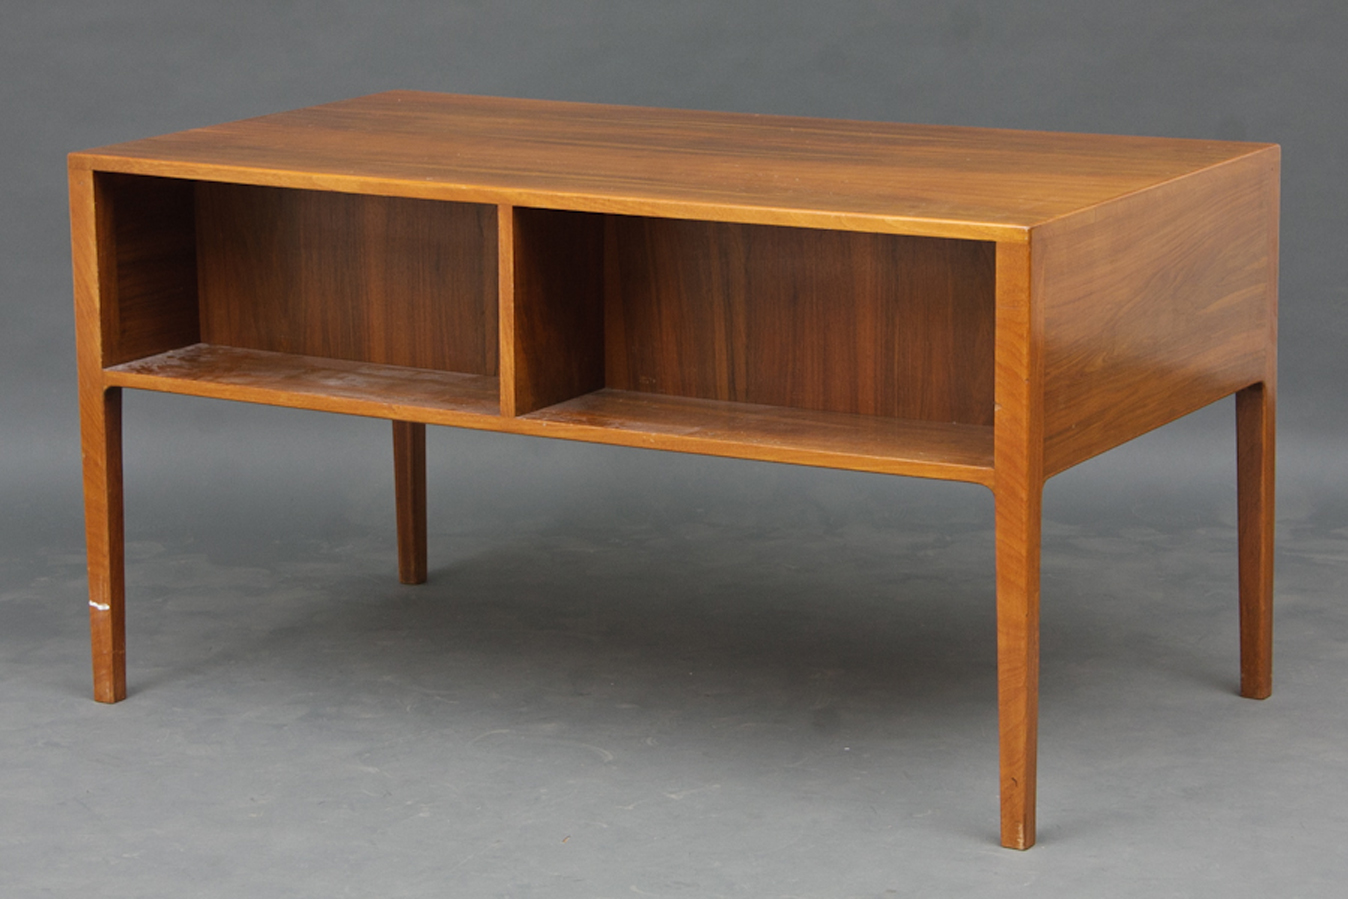 11 danish vintage walnut desk 75x140x78cm p4_gallery_block.jpg